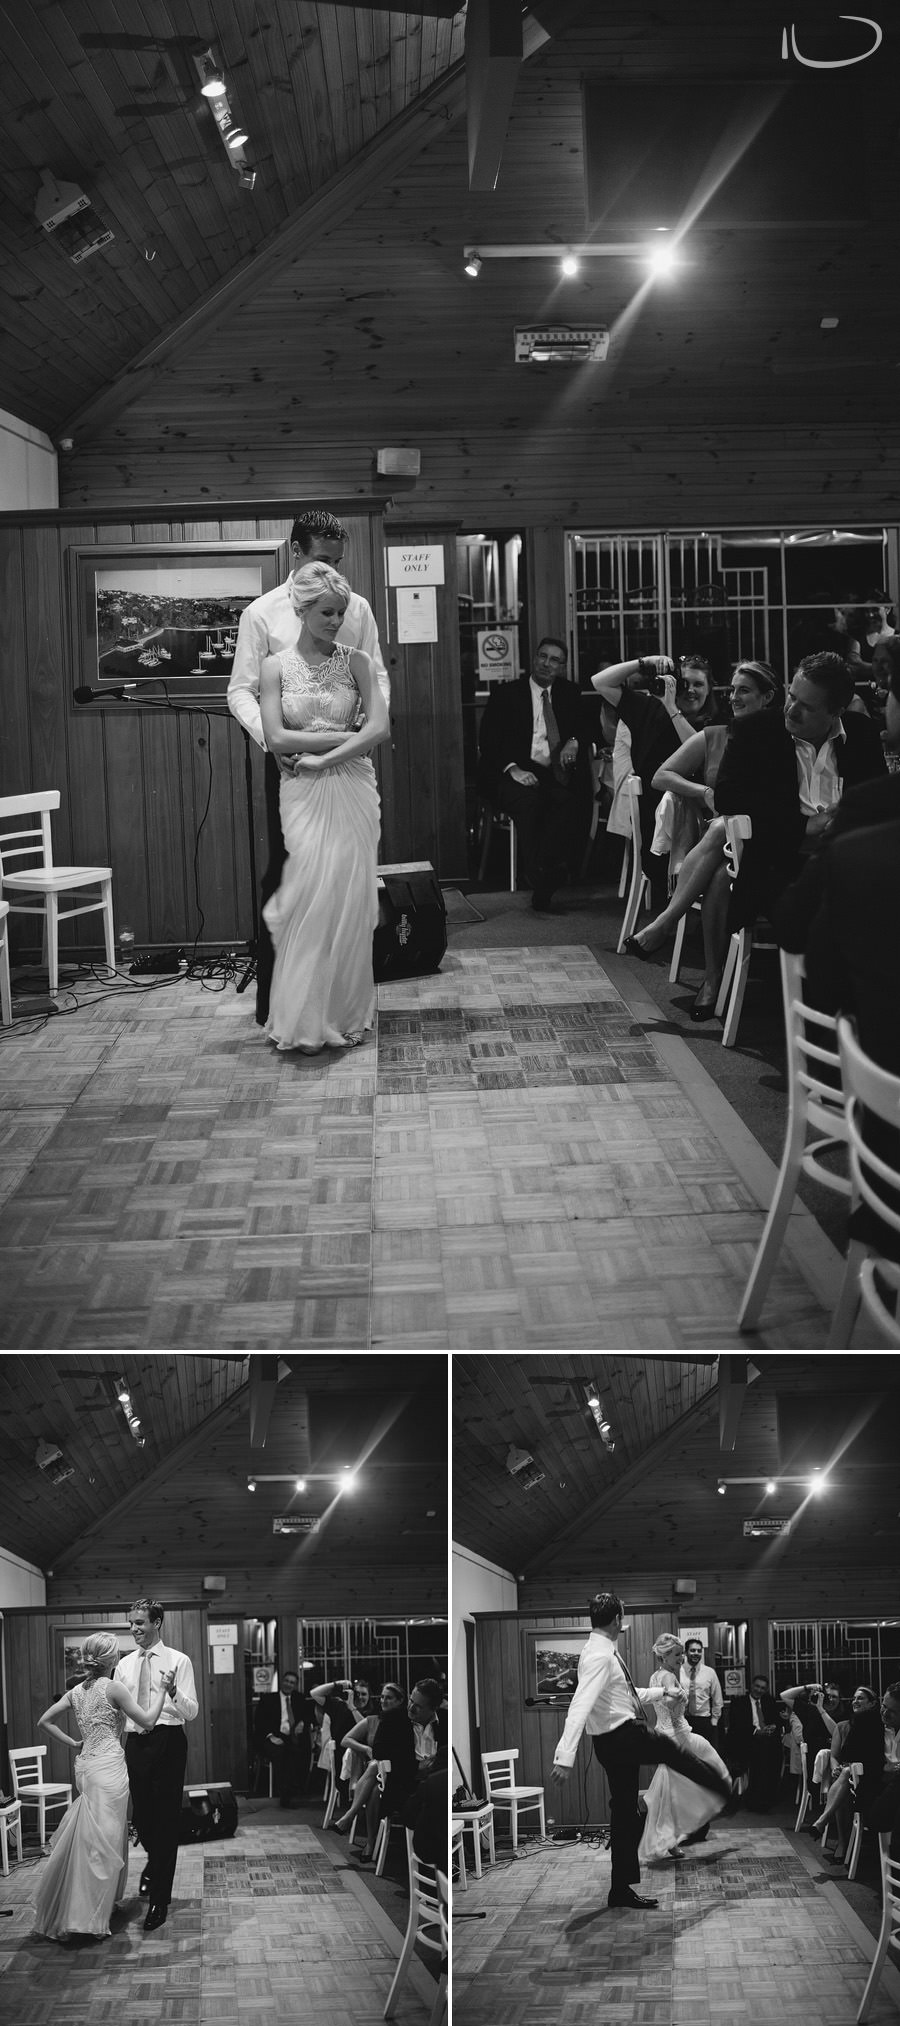 Clonnys Wedding Photographer: Bride & Groom first dance